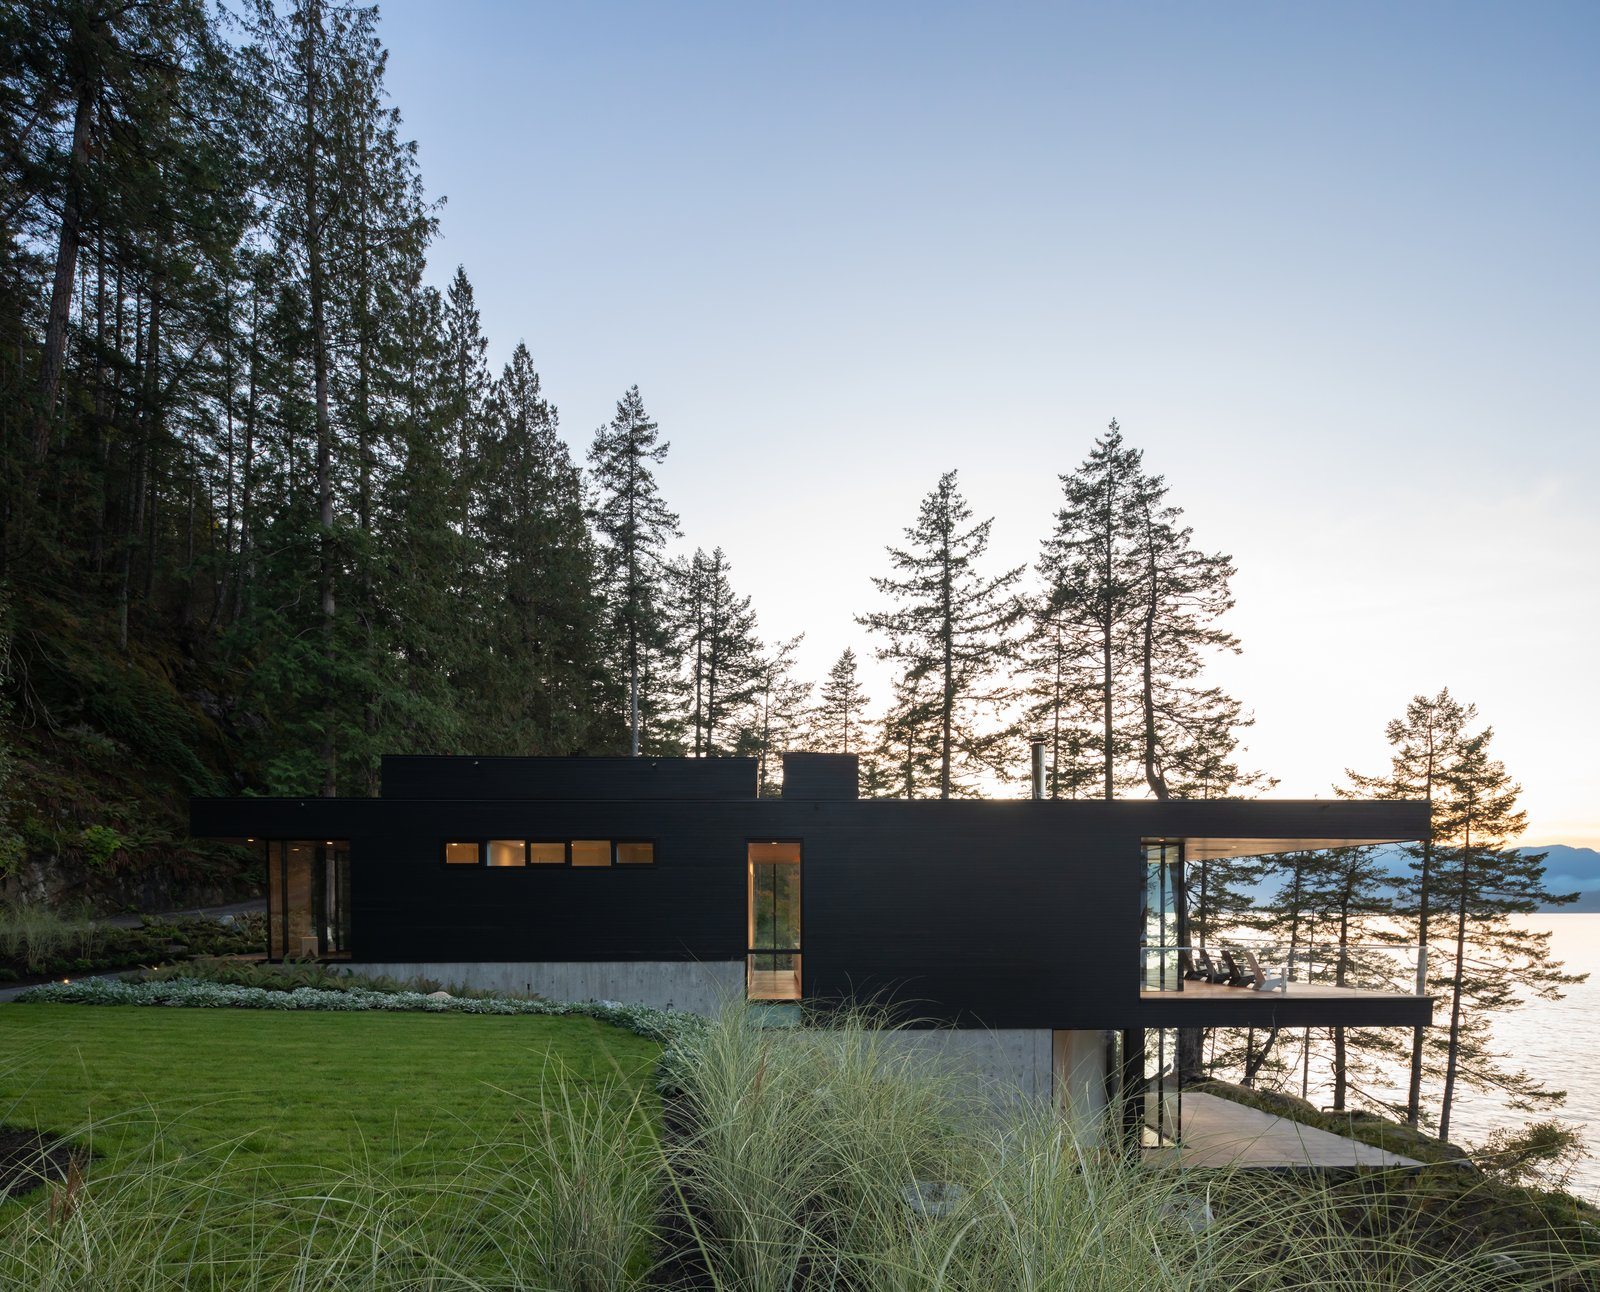 Bowen Island House exterior at dusk, by office of mcfarlane biggar architects + designers